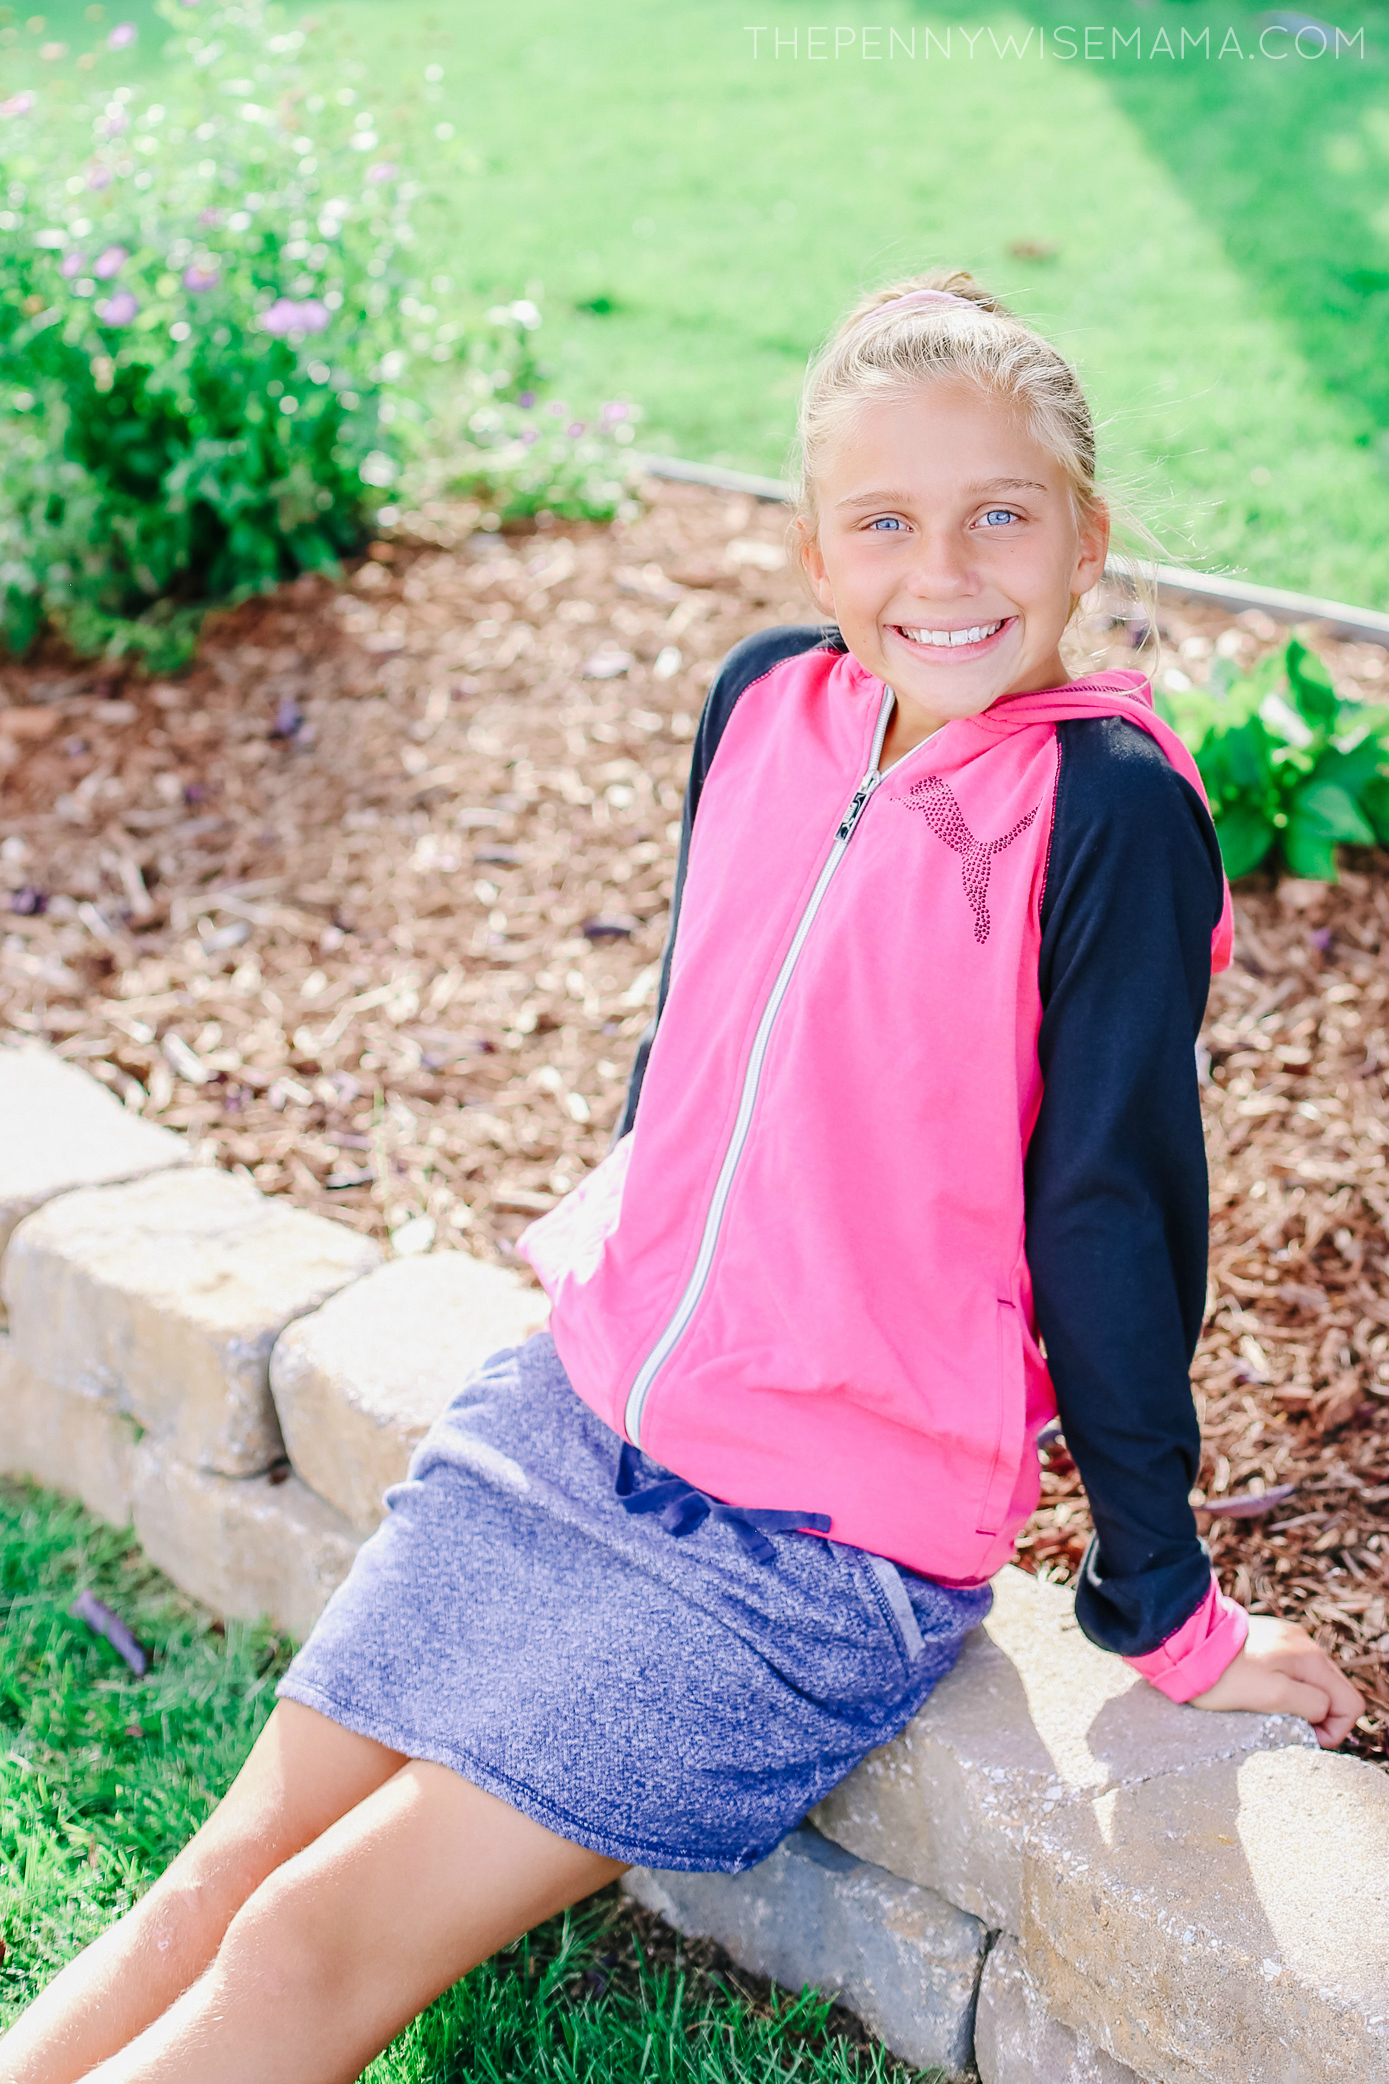 Affordable kids clothing from Kids on 45th